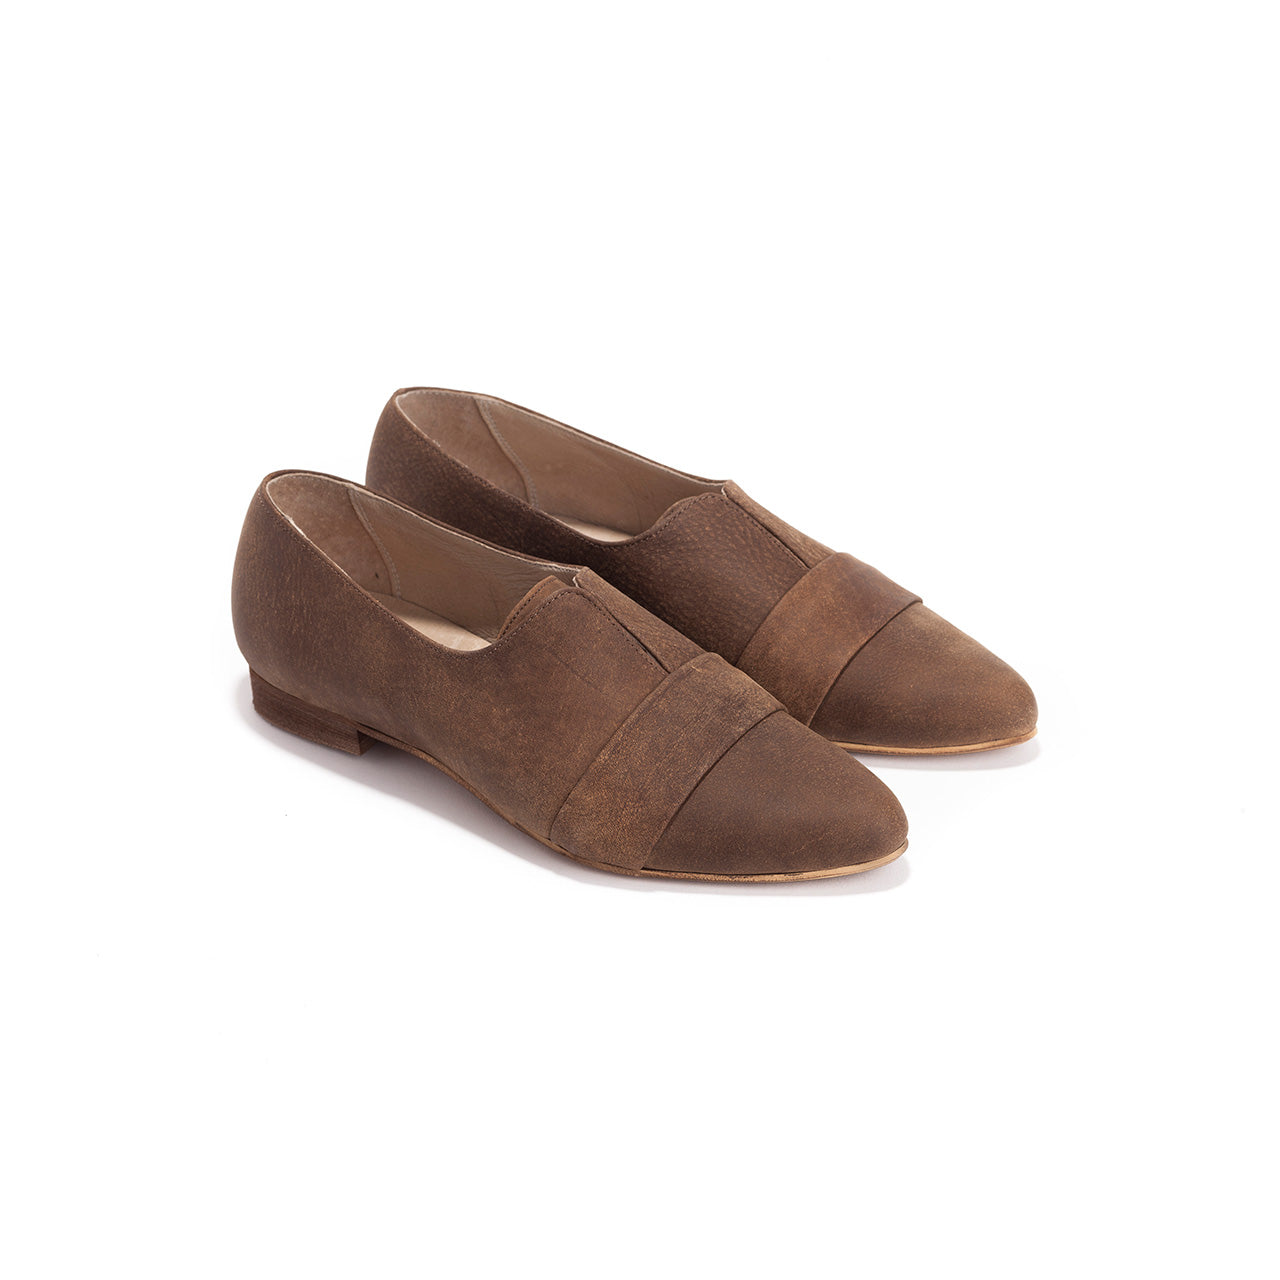 Nora - Loafer Flats